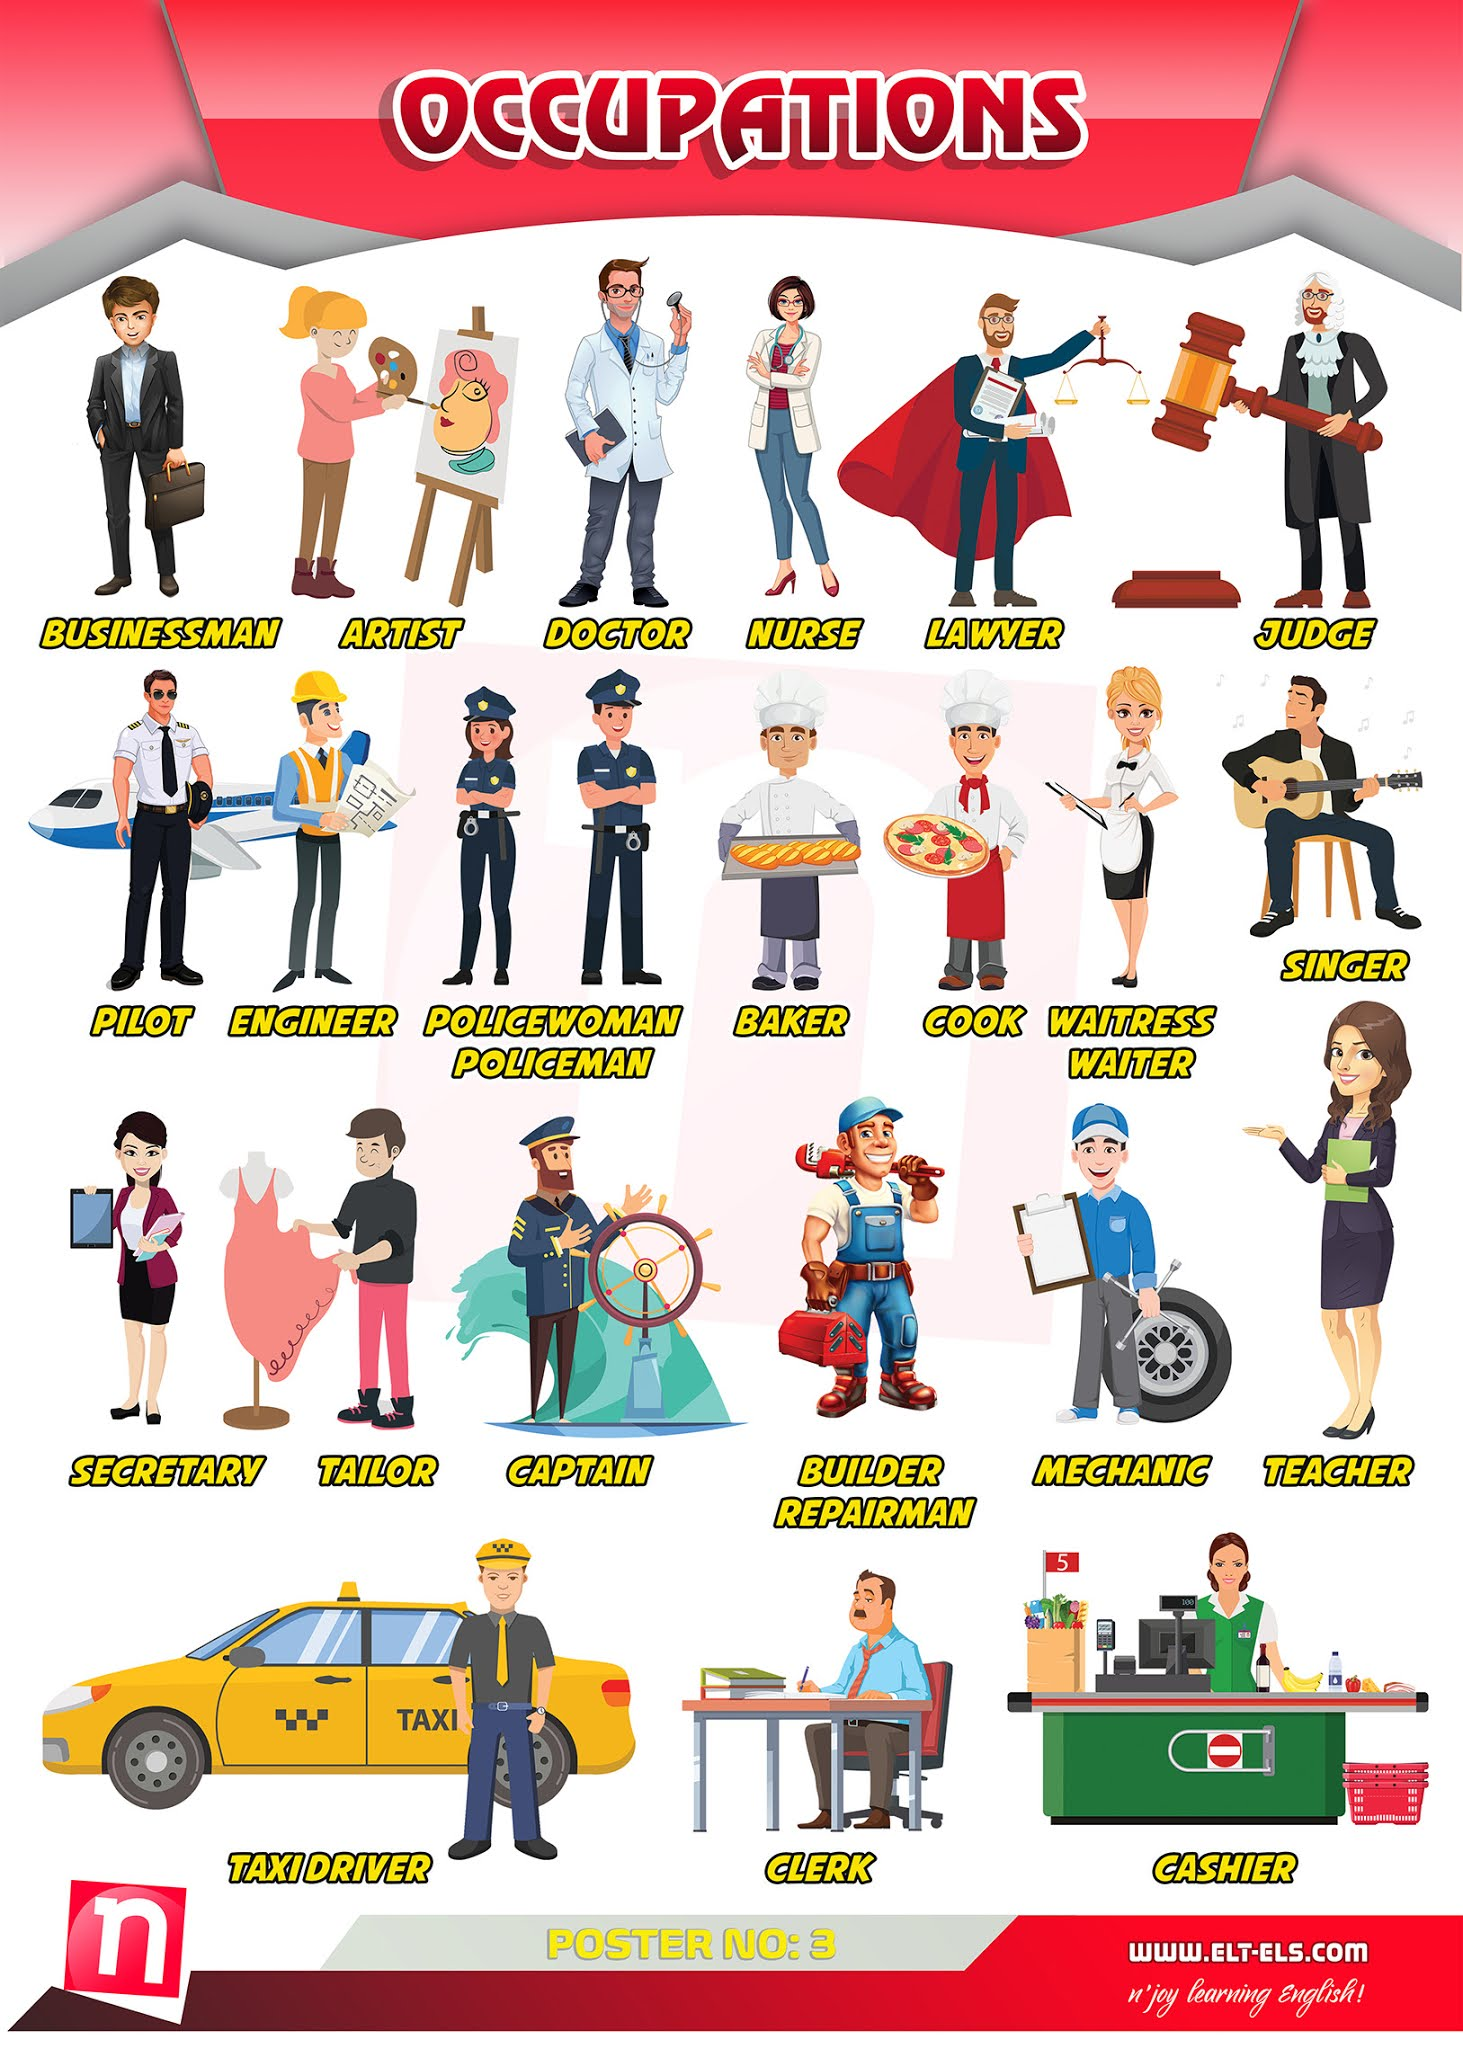 Occupations - Jobs in English